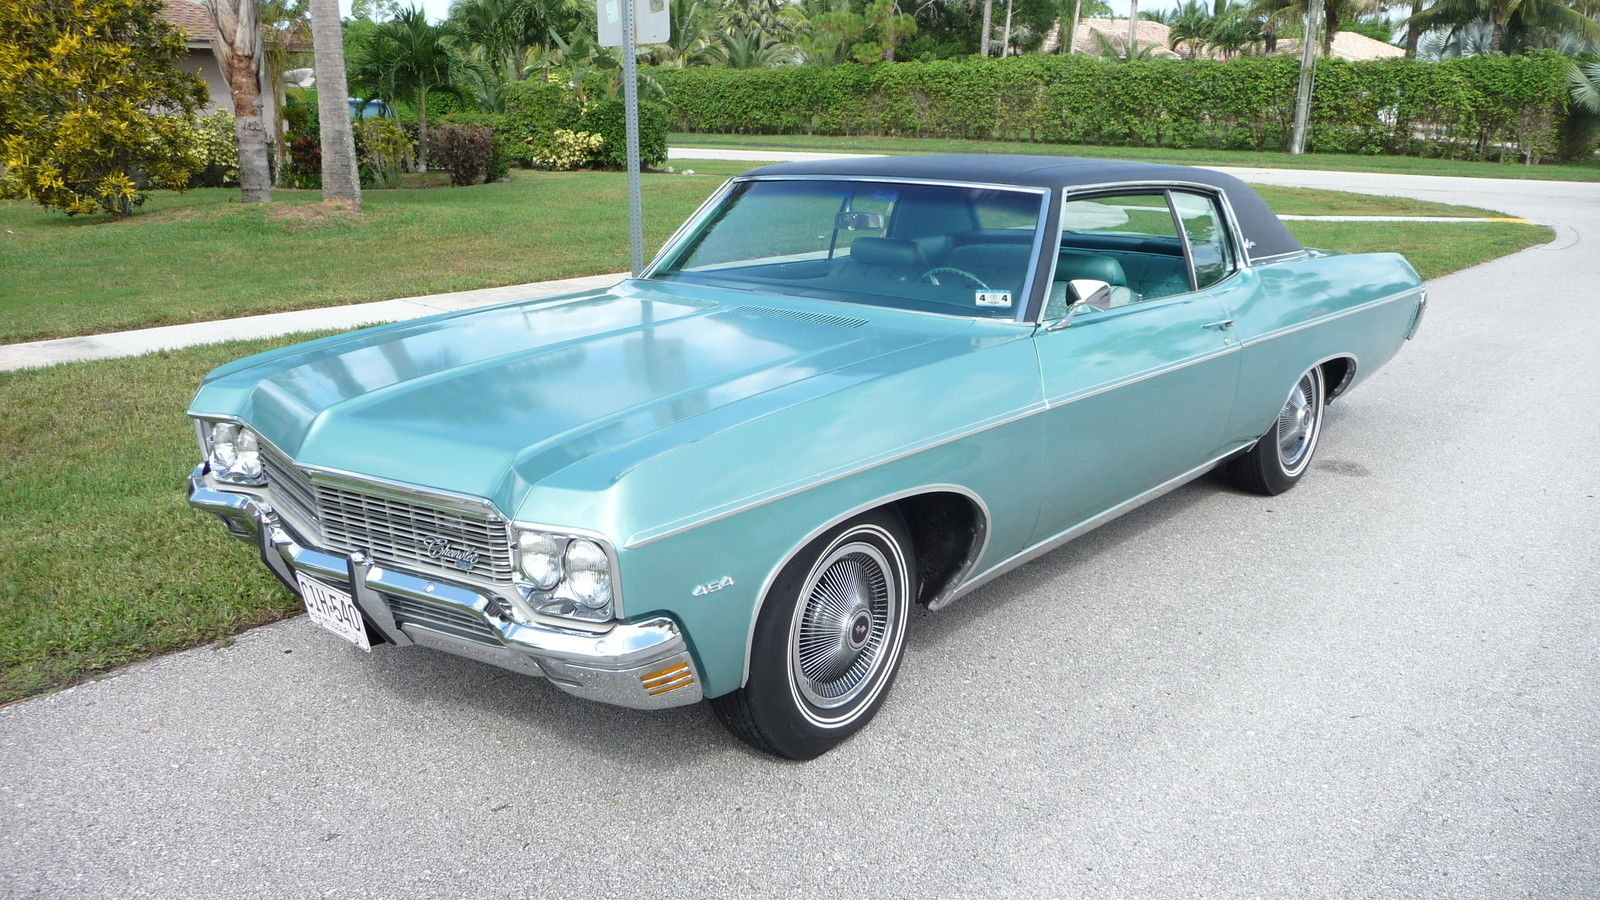 1970 Chevy Caprice Classic Chevrolet Caprice 1970 For Sale